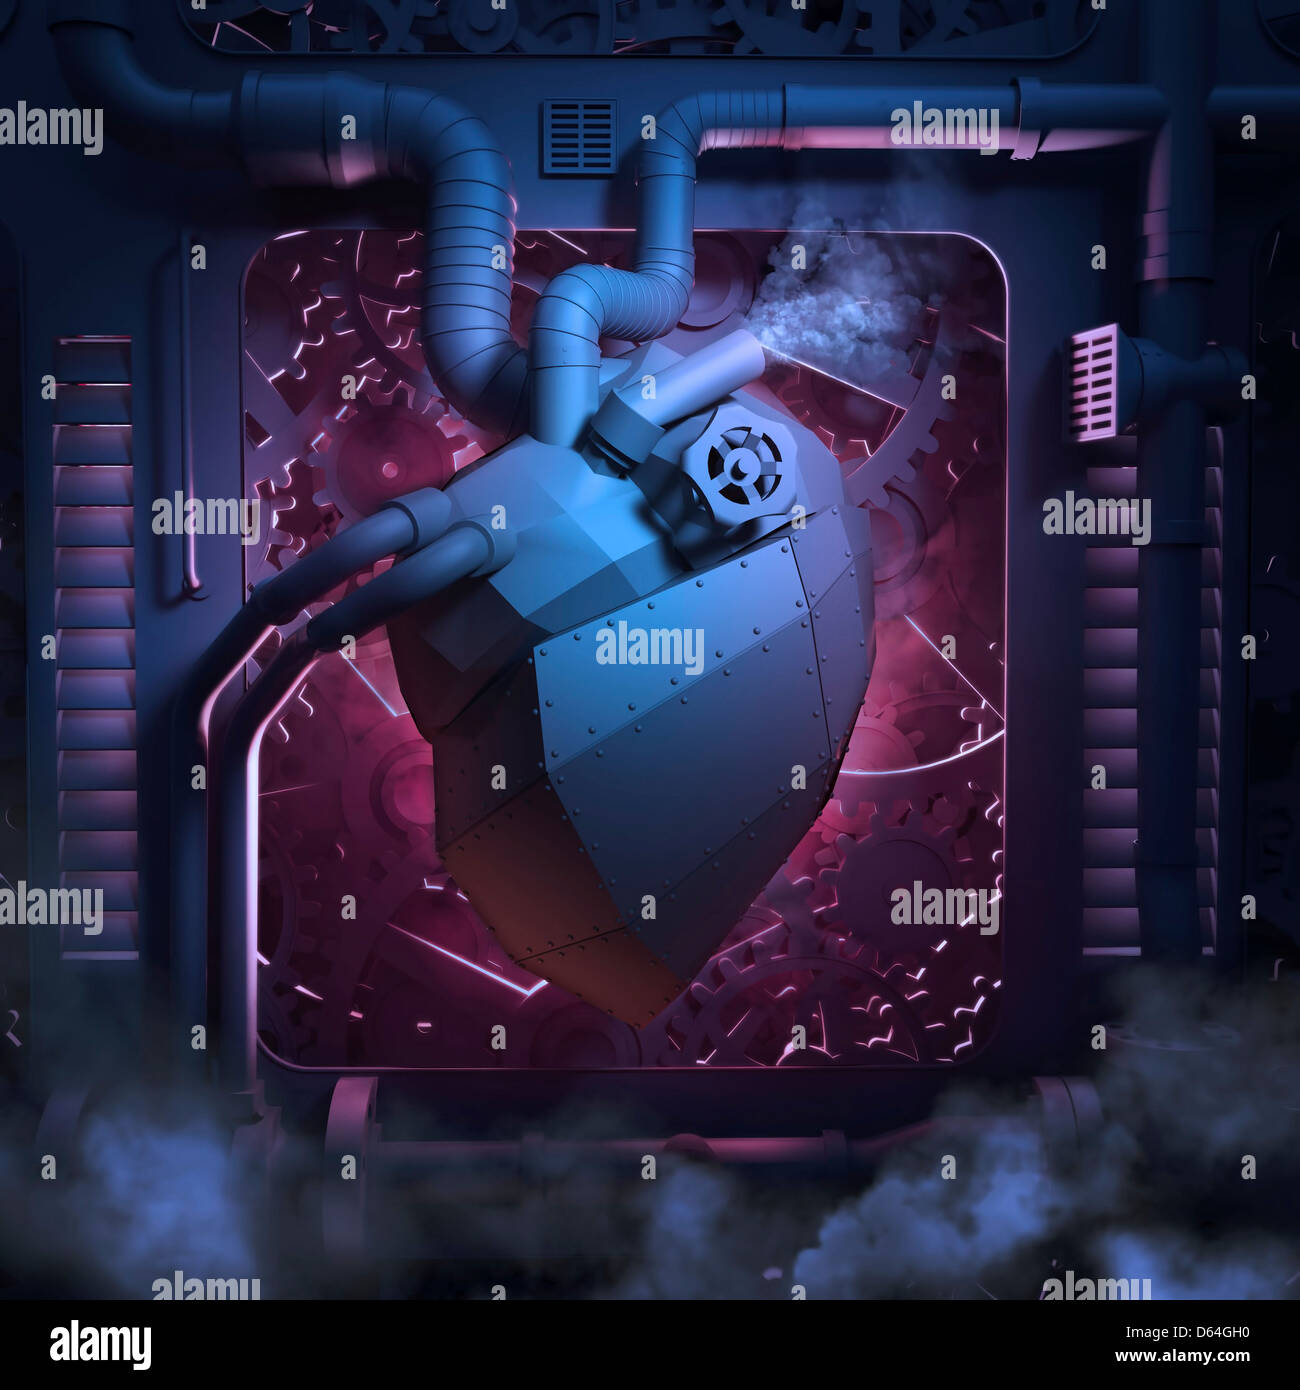 Mechanical heart, conceptual artwork - Stock Image